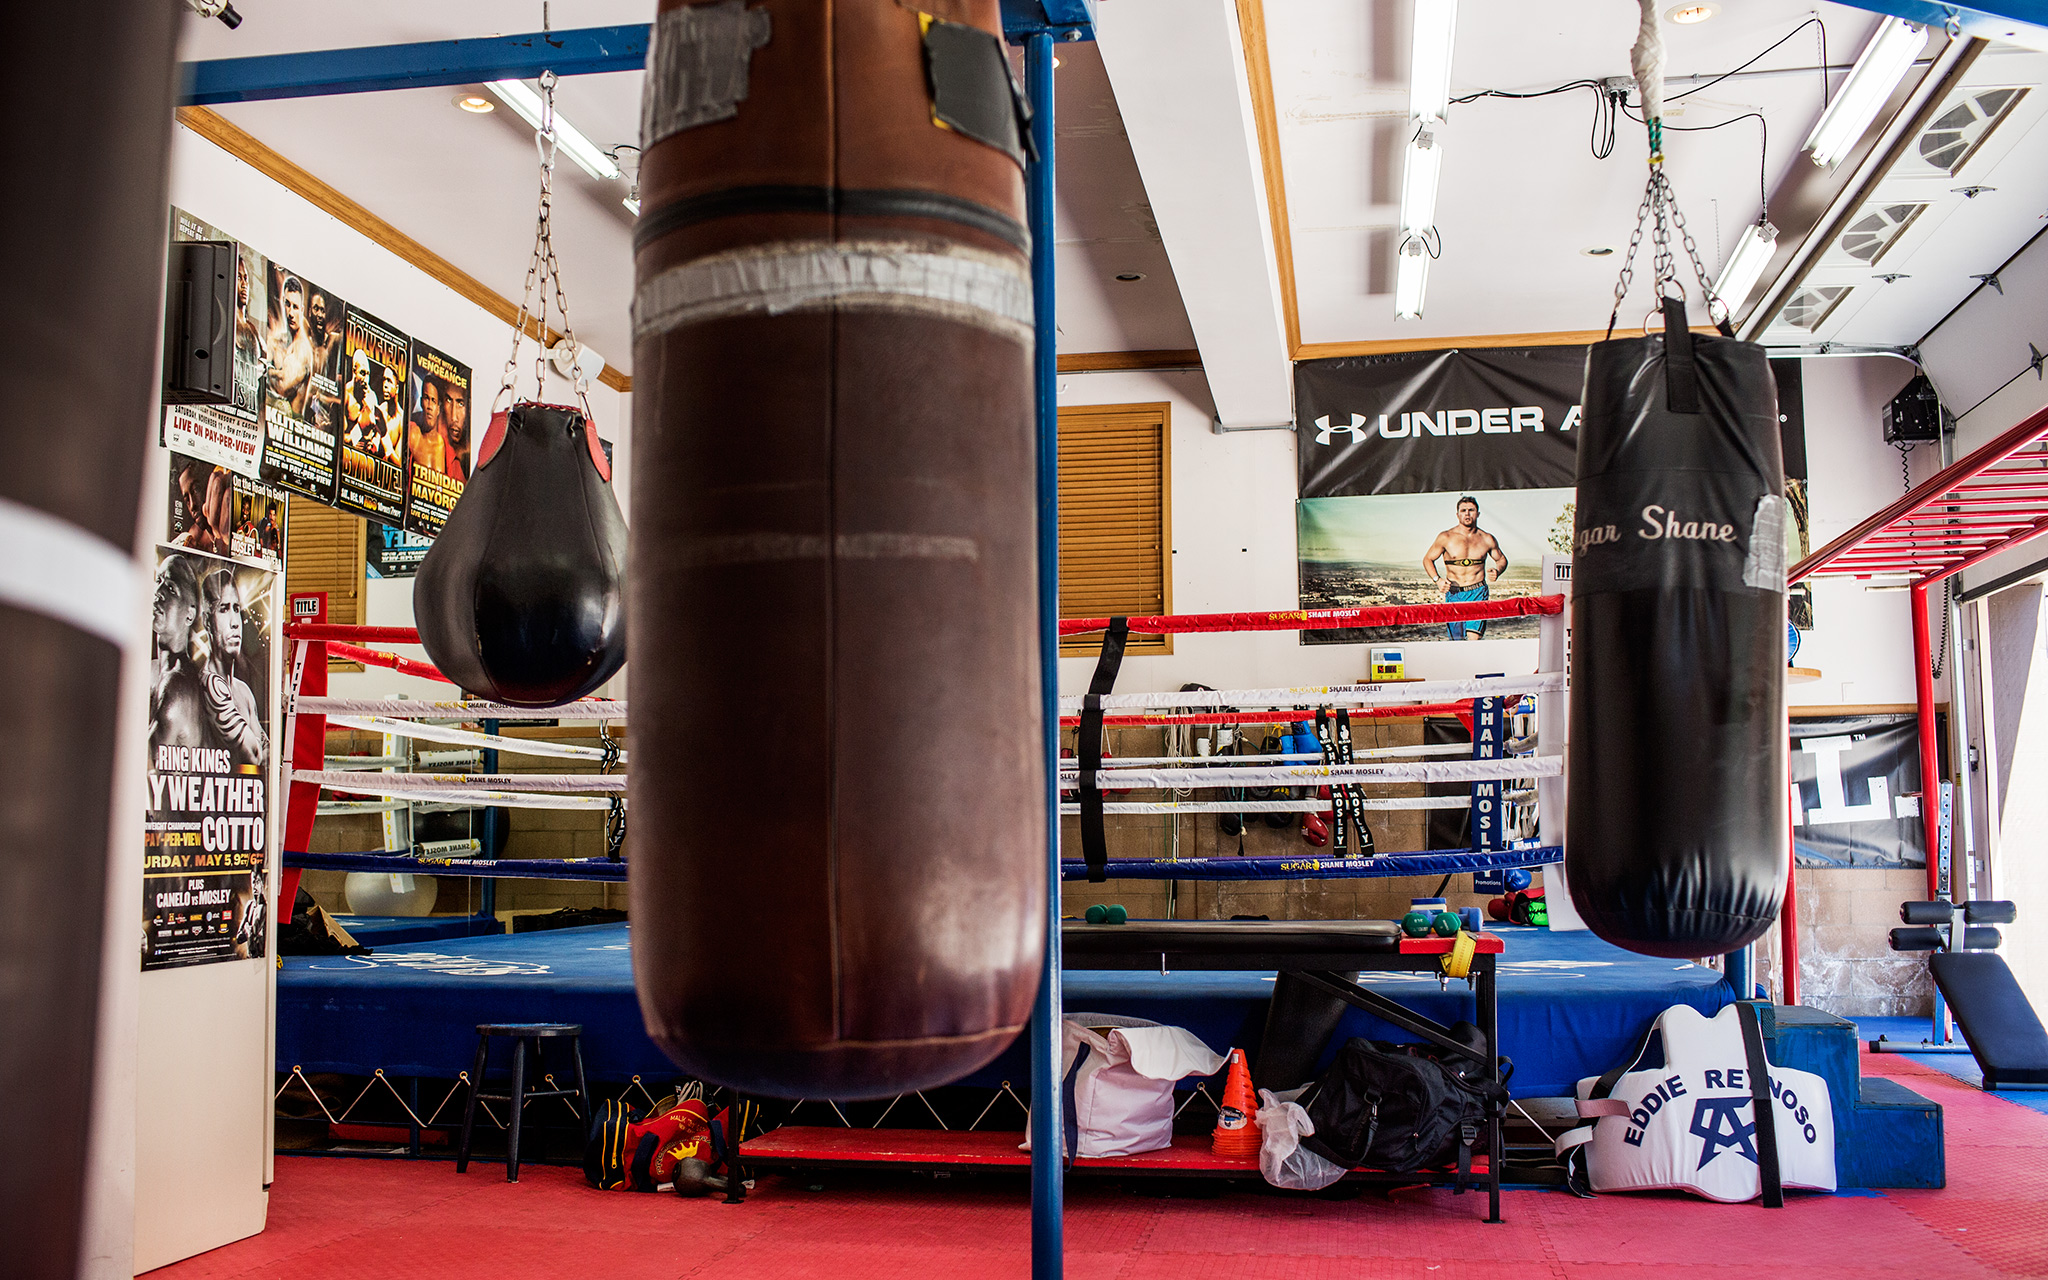 Westside boxing club los angeles boxing s most famous gyms espn